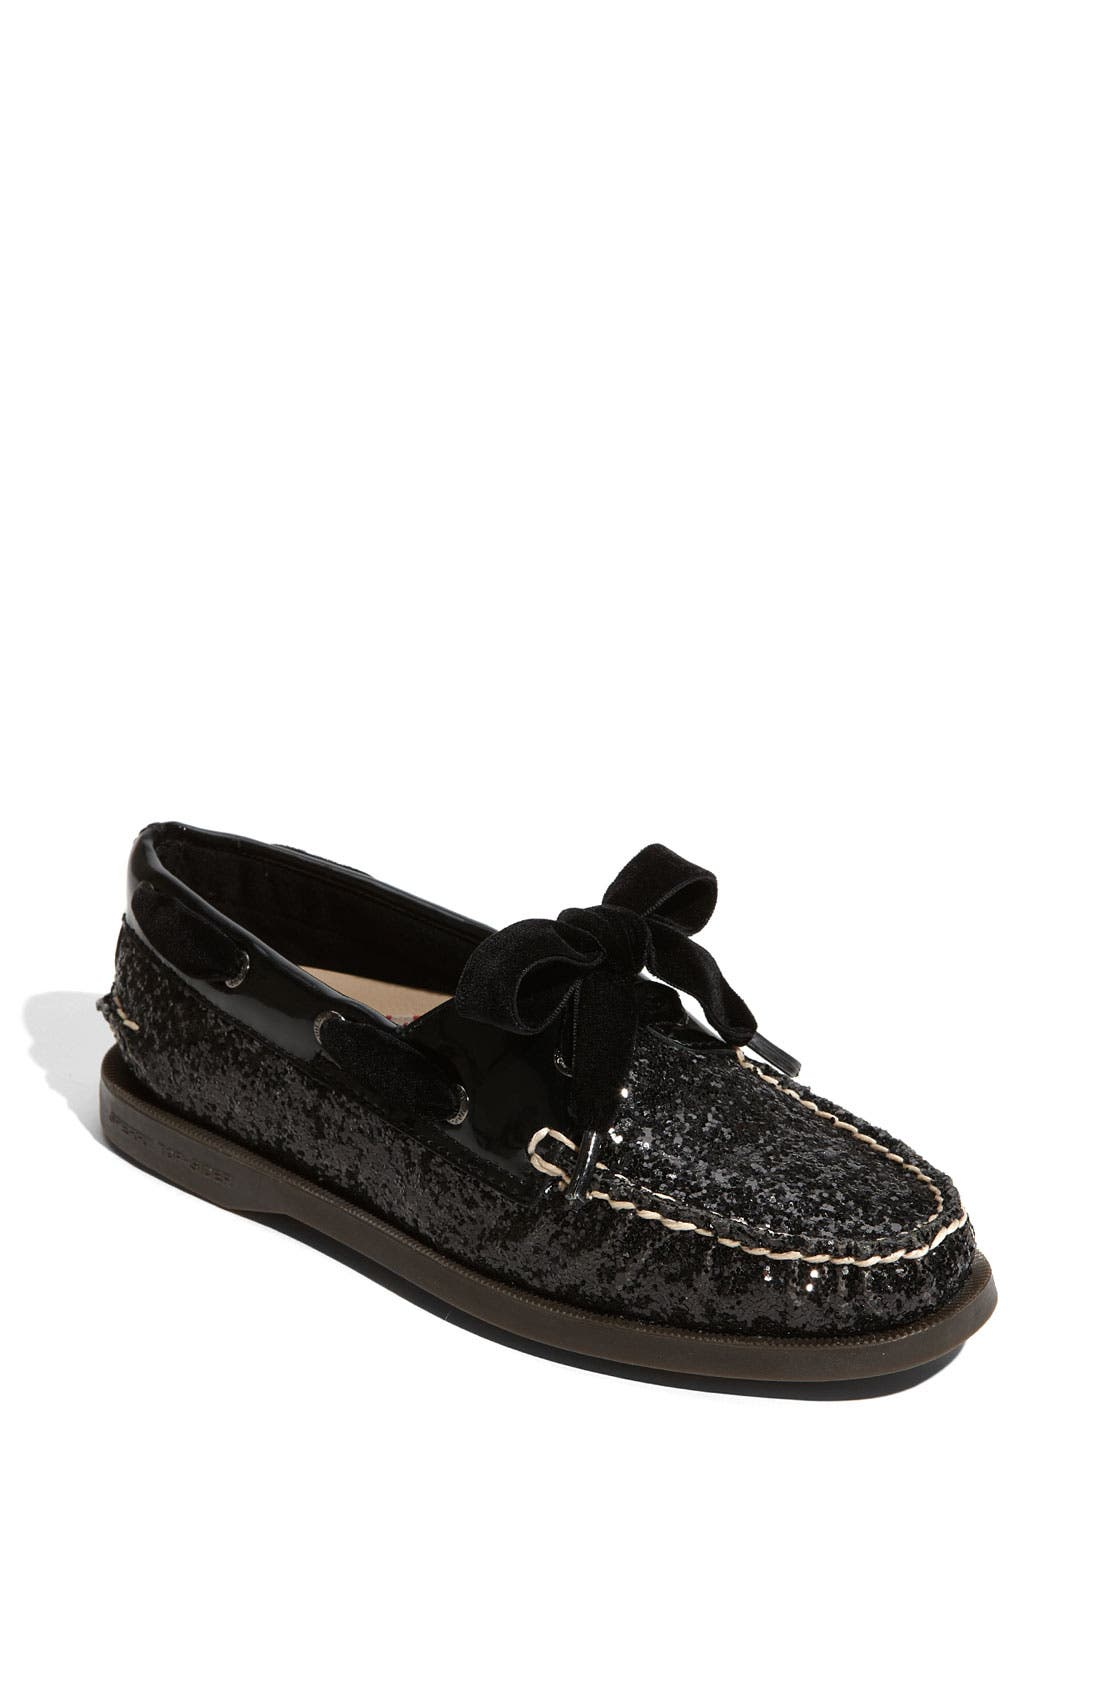 SPERRY Top-Sider<sup>®</sup> 'Authentic Original Glitter' Boat Shoe, Main, color, 005